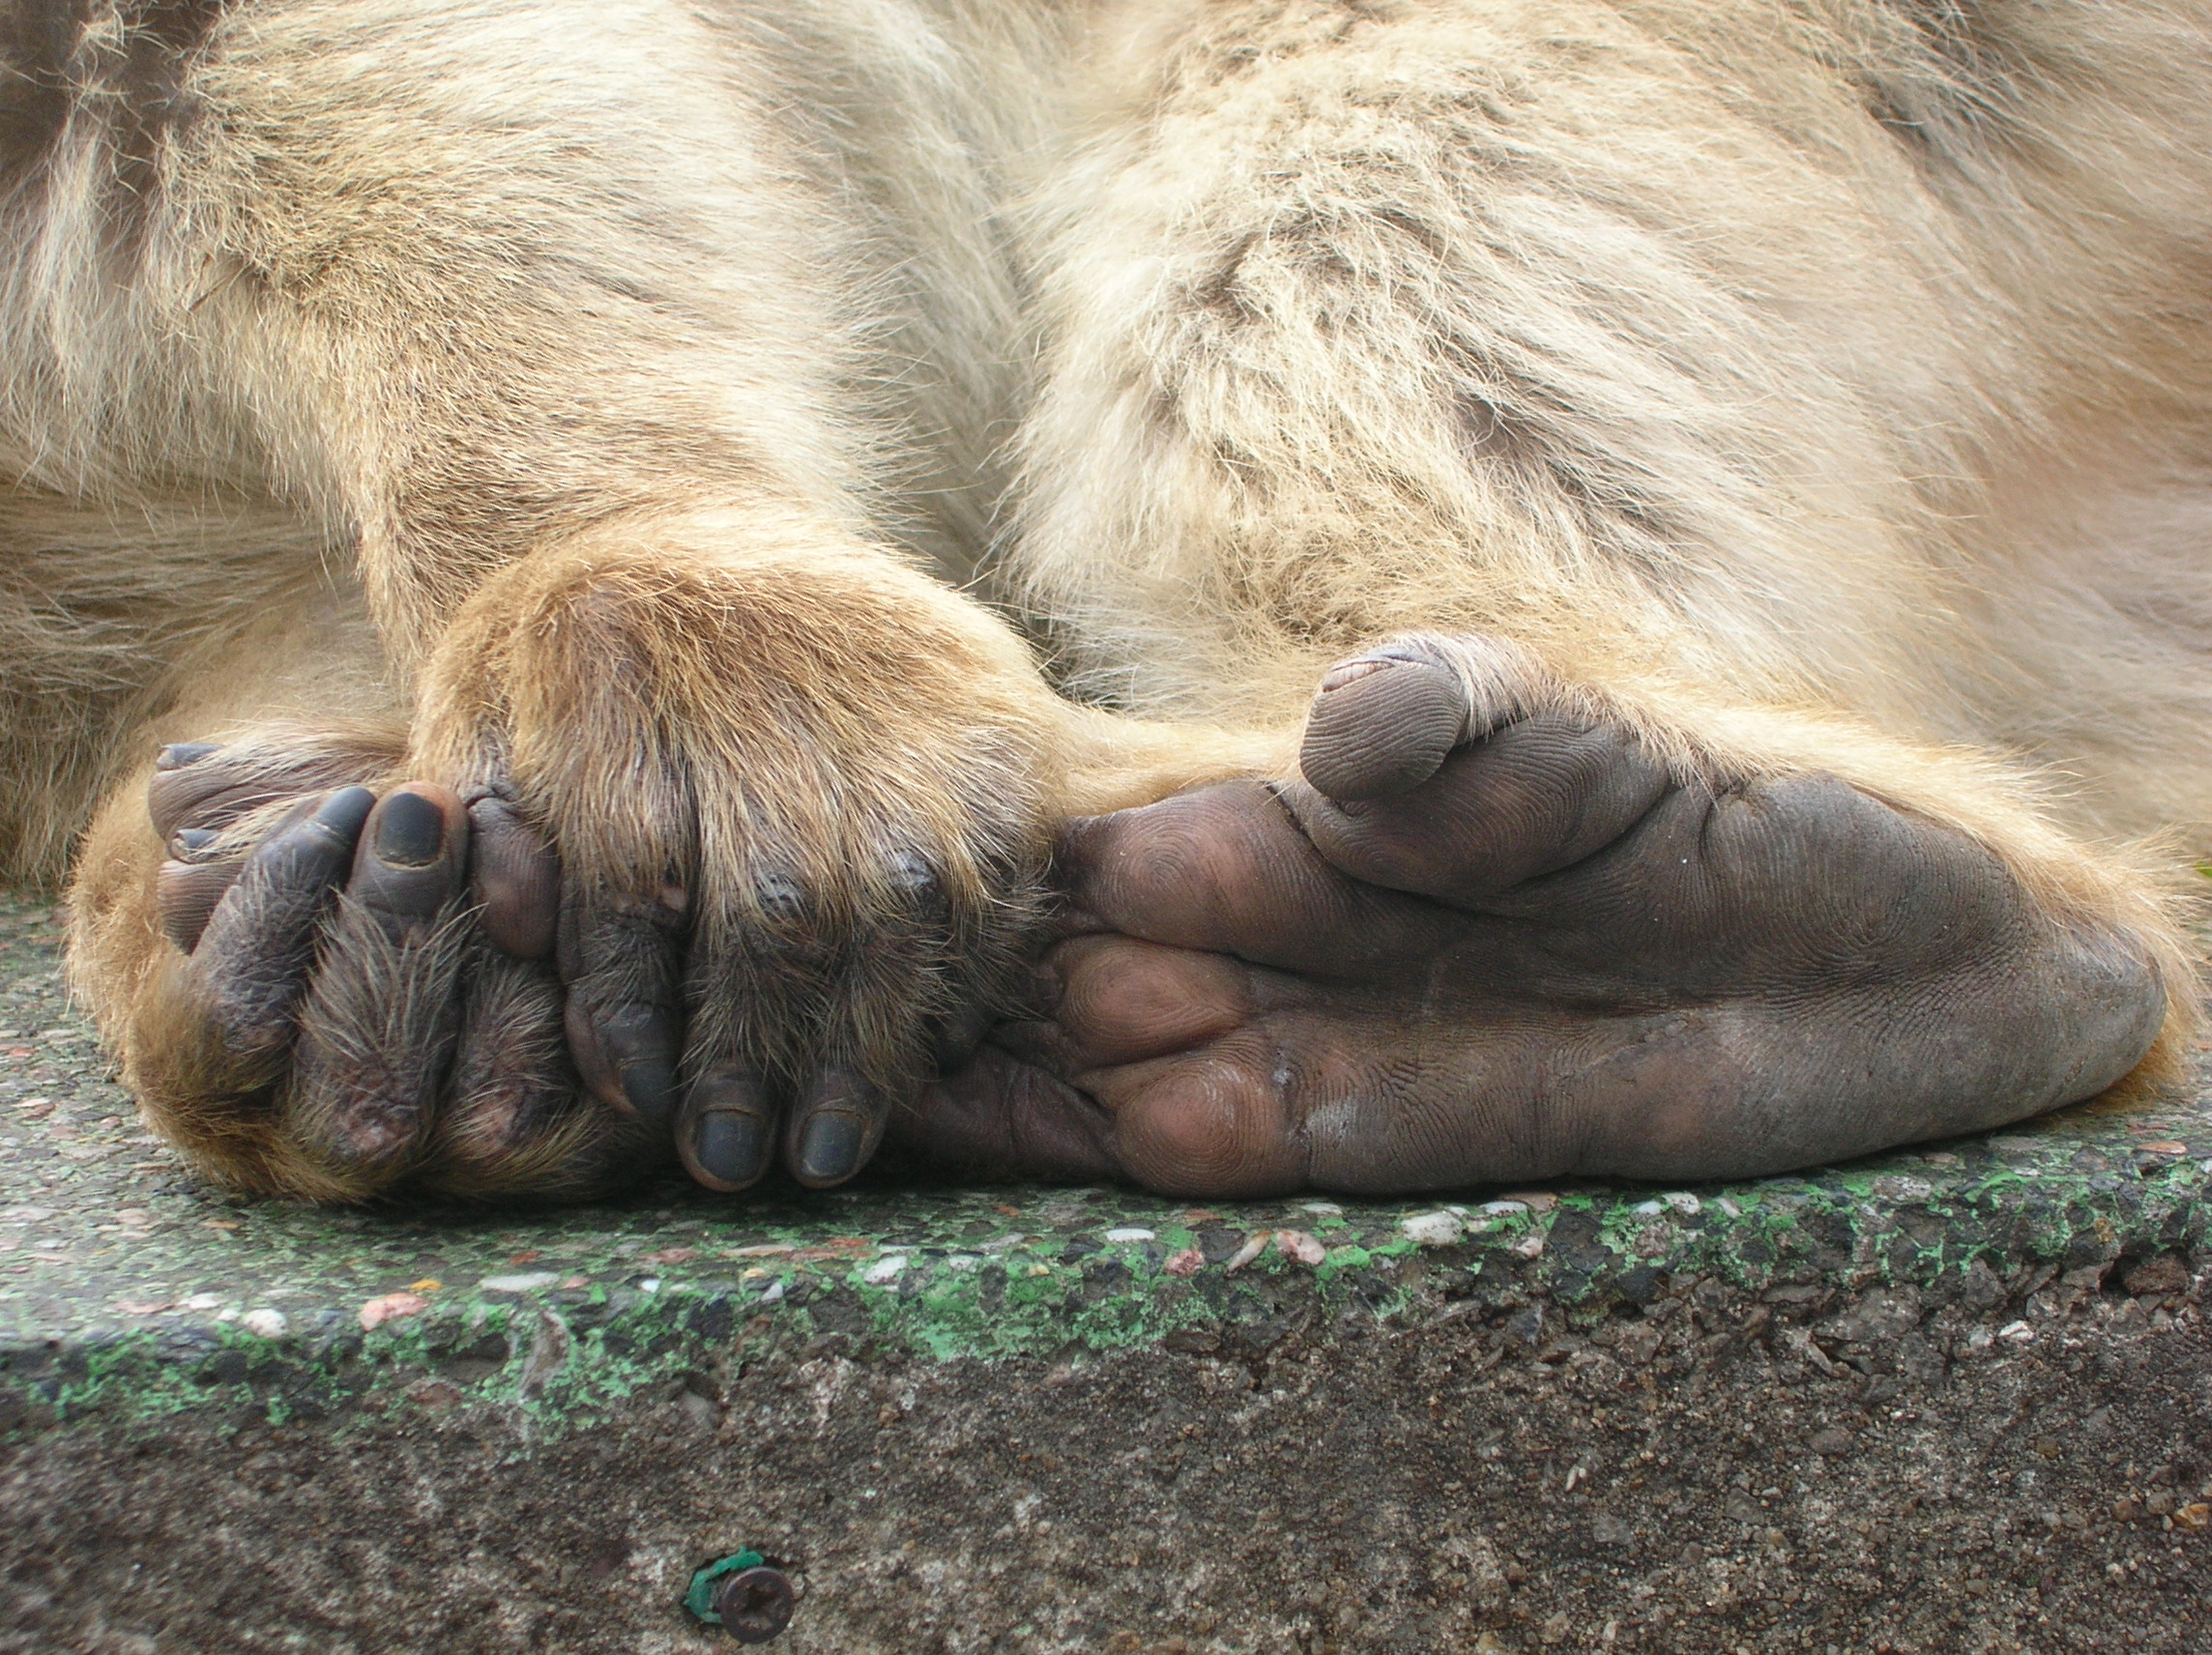 Fichier:Macaca sylvanus feet and hands.JPG